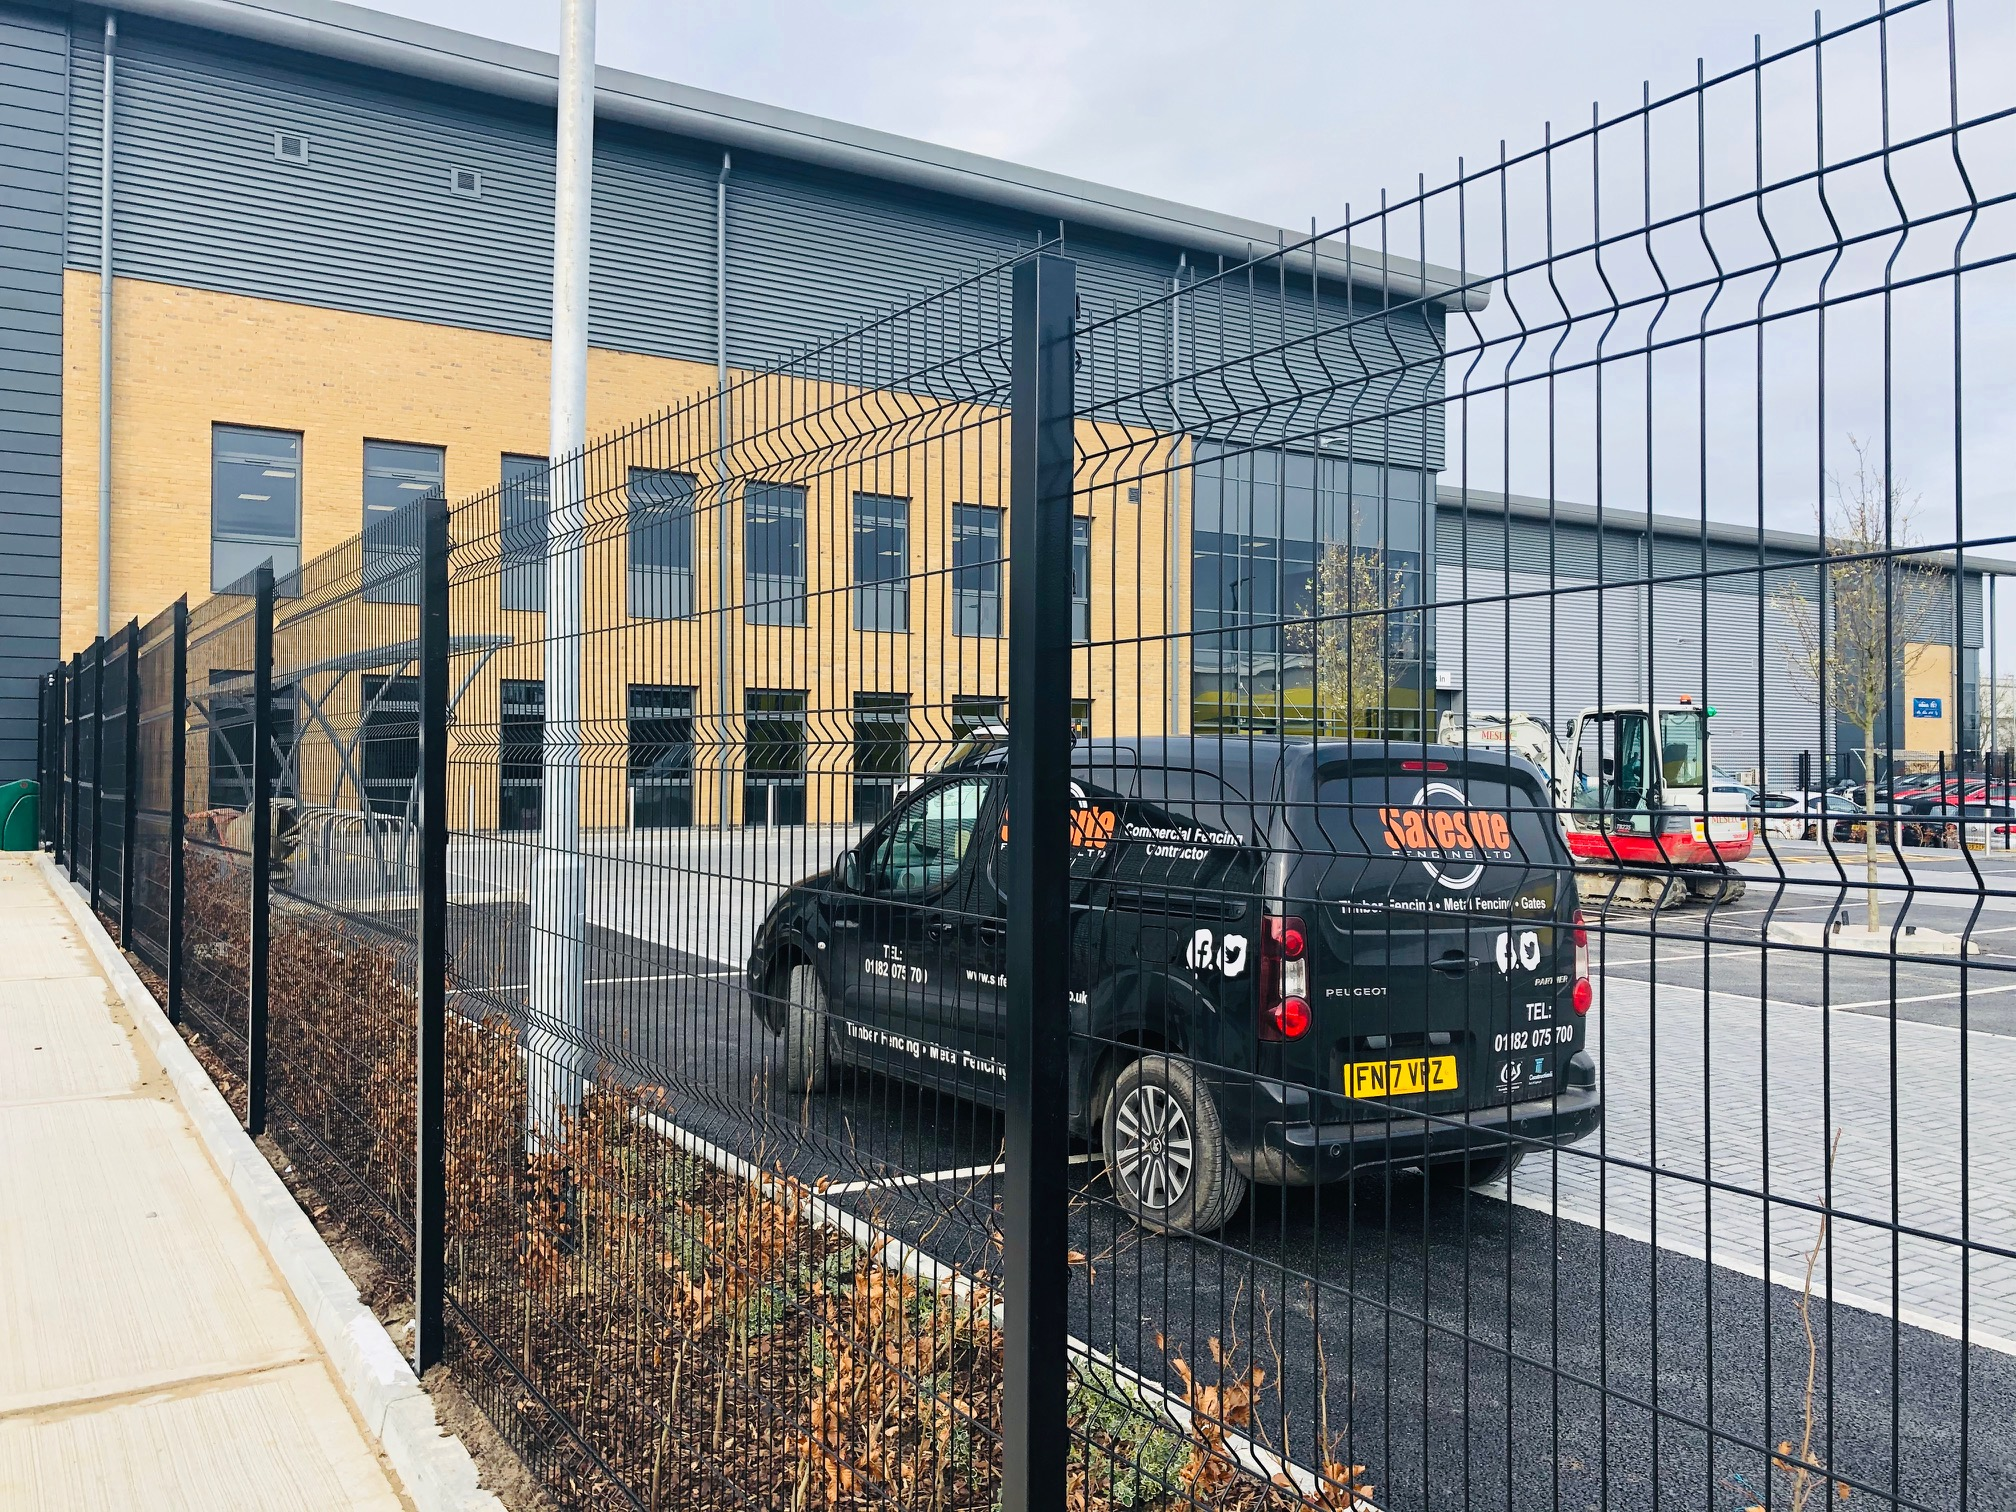 V Mesh & Armco – Bracknell – August 19 to March 20